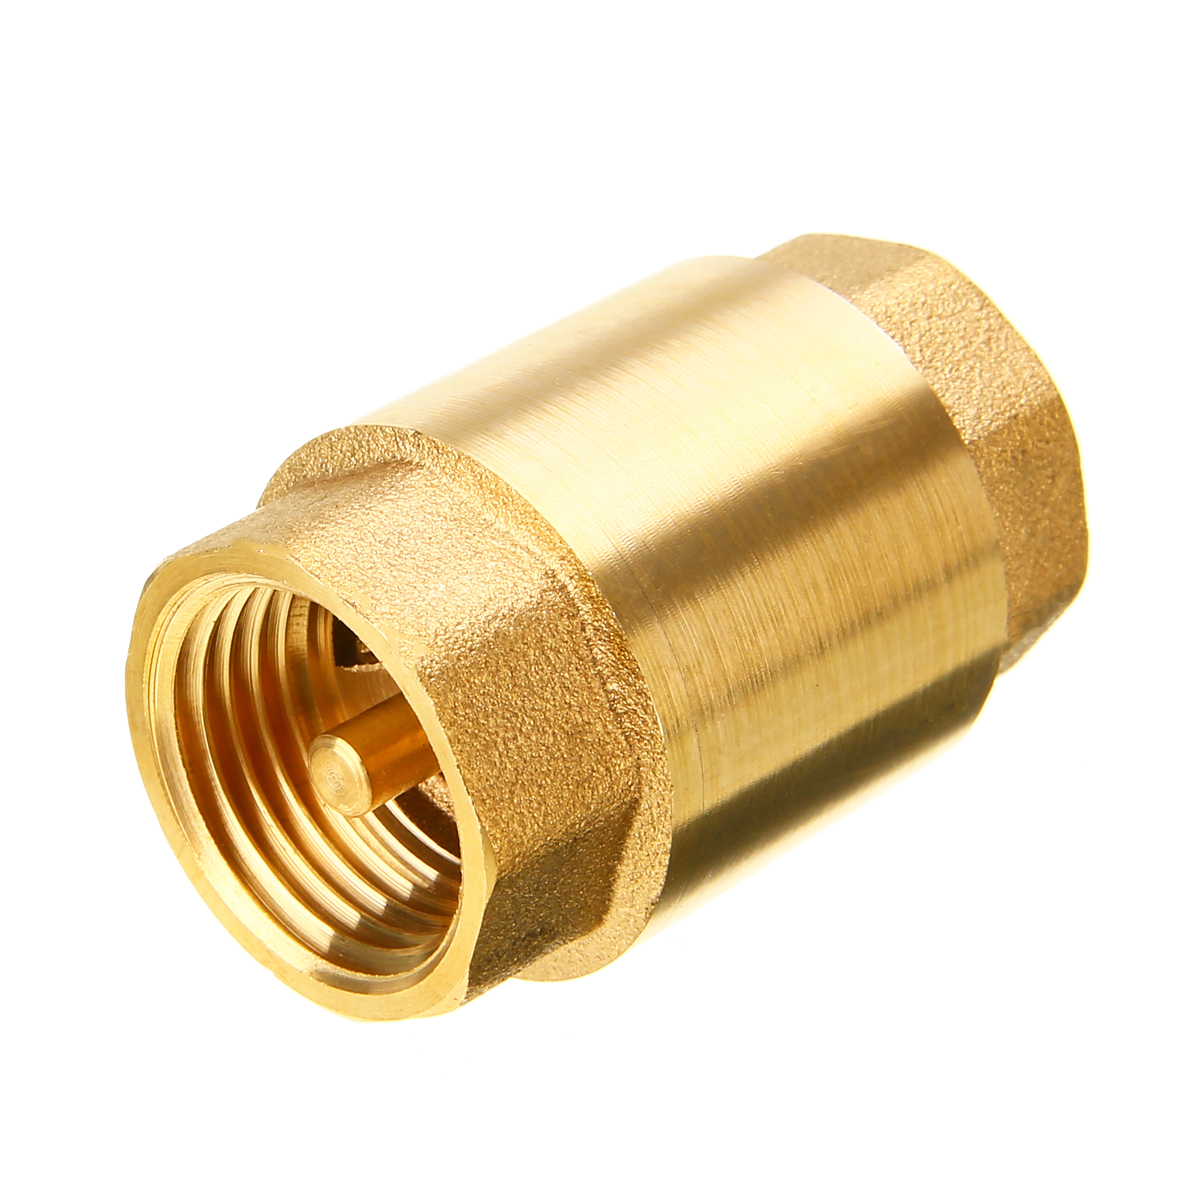 1pc New 1/2'' NPT Brass Thread In-Line Spring Check Valve 200WOG